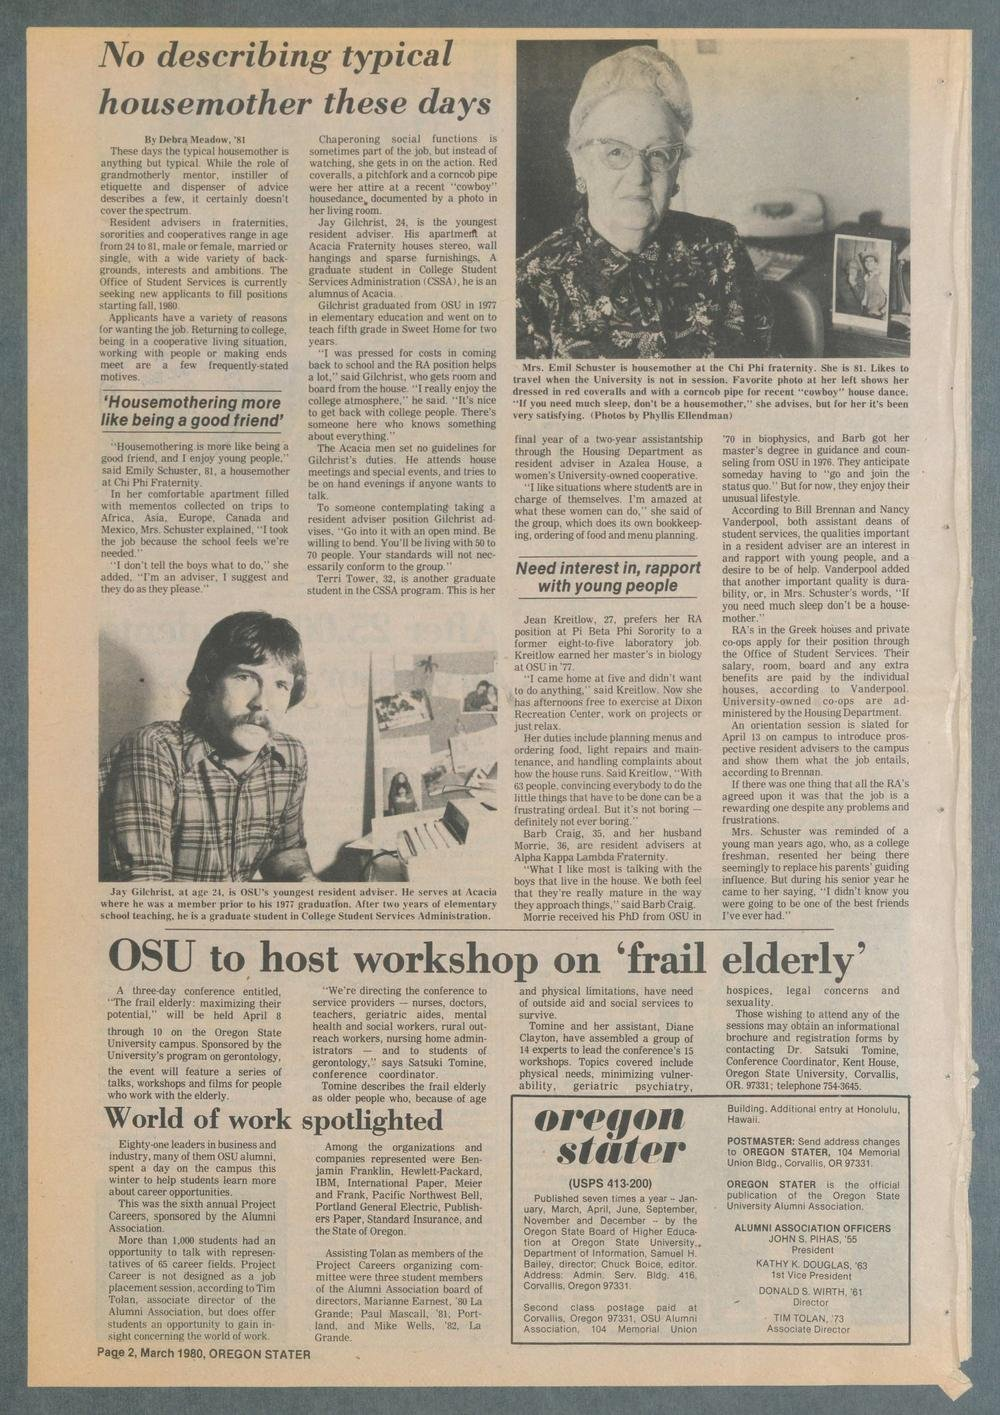 Oregon Stater, March 1980 | Oregon State University Alumni